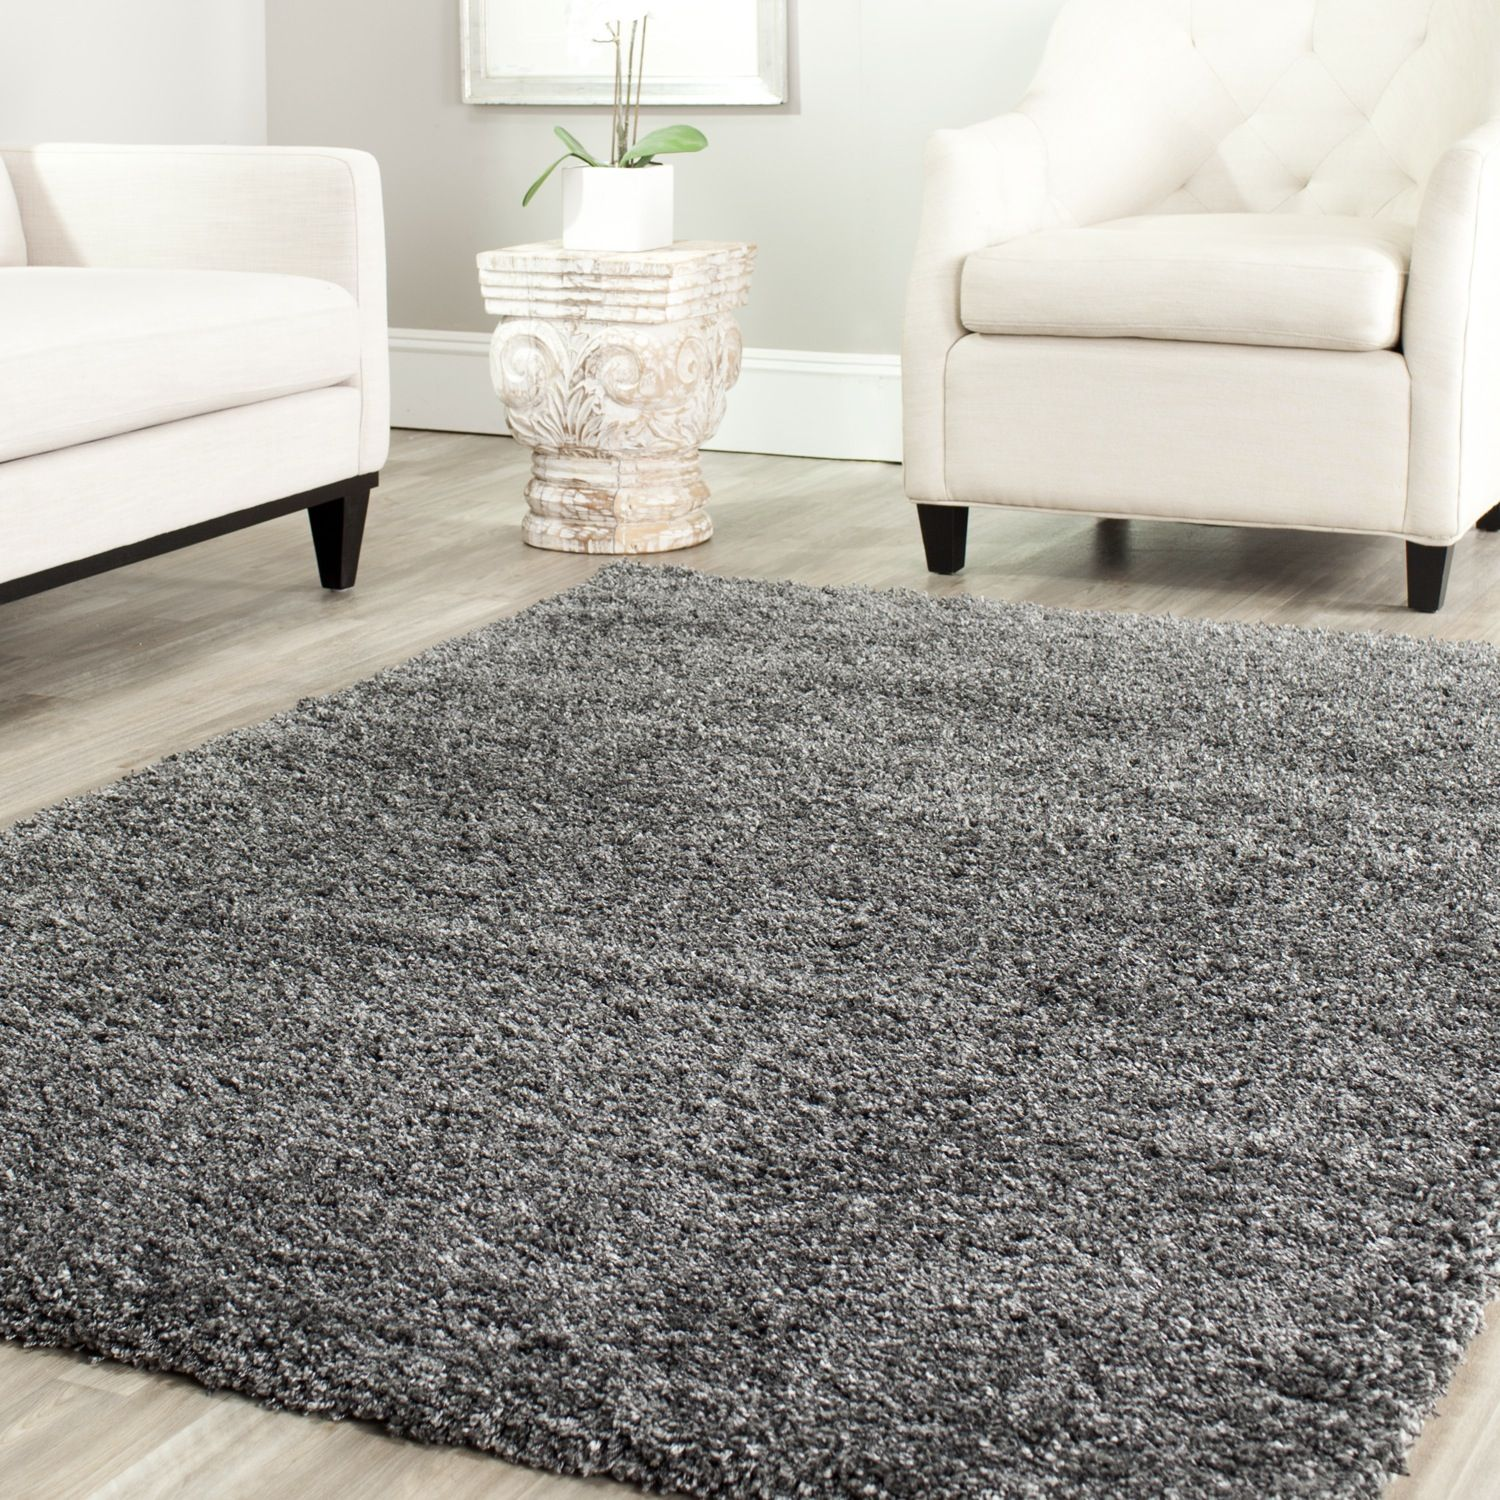 Ropriate To Adorn Virtually Every Room Or Living E This Rug S Neutral Palette Makes It Easy Mix And Match